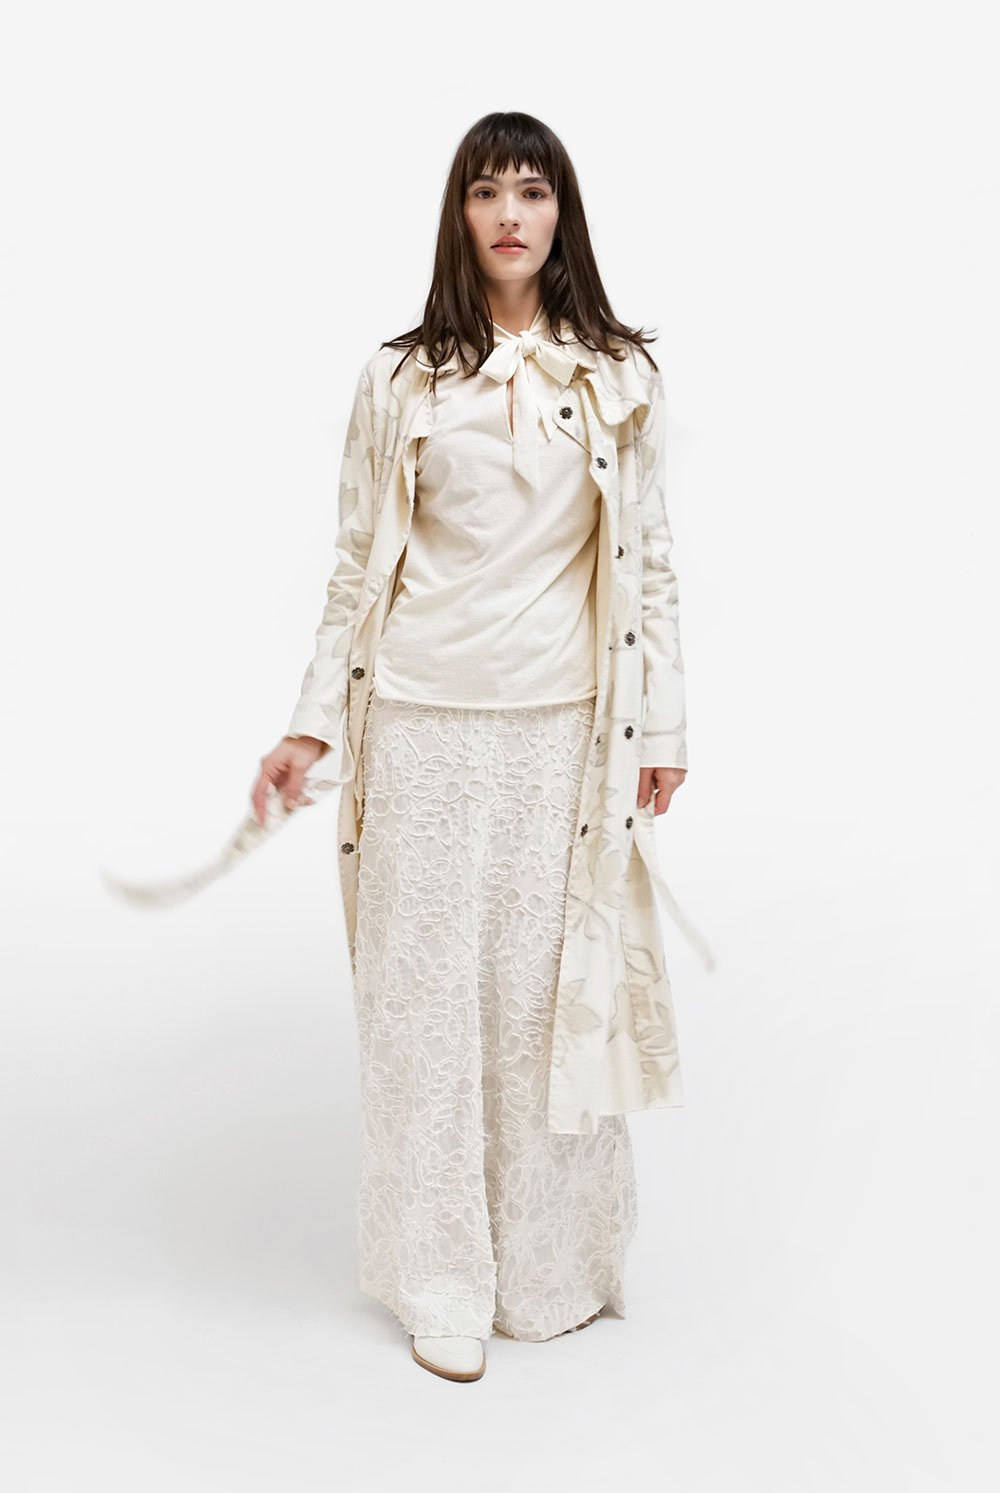 Alabama Chanin Organic Cotton Floral Trench and Lace Skirt on Model